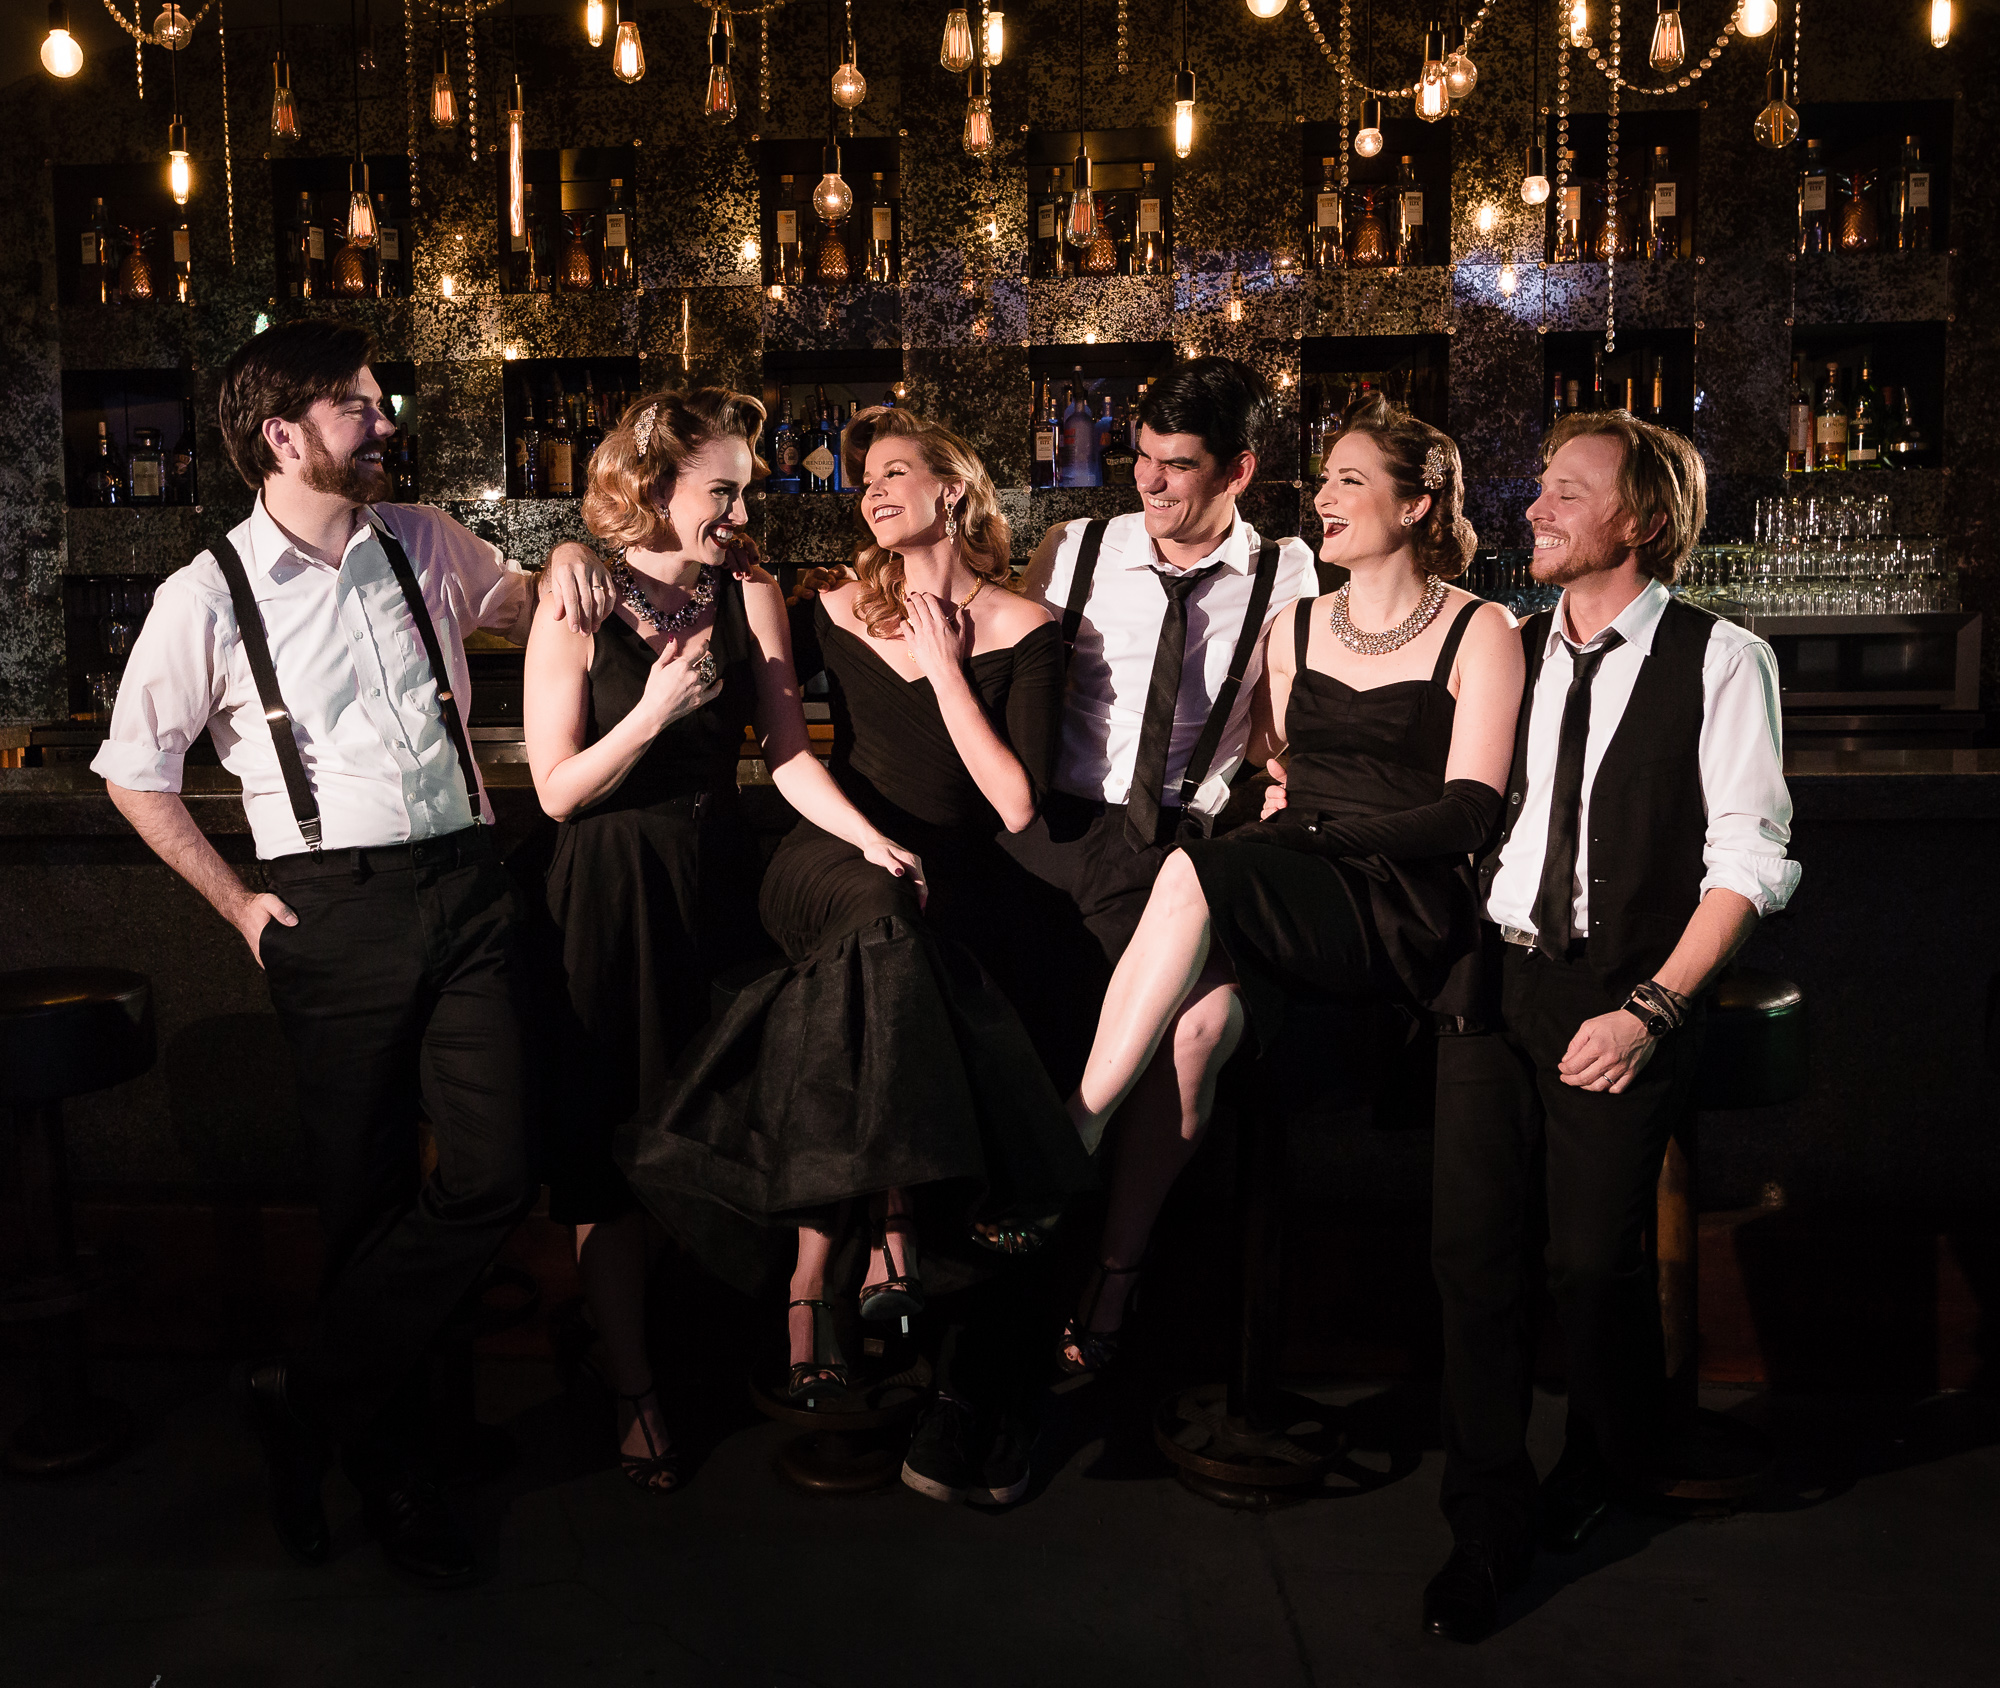 THE ENTIRE BOMBSHELLS FAMILY: JORDAN LAMOUREUX (BASS), TIFFANY DISSETTE, HEATHER LUNDSTEDT O'NEILL, DAVID LAMOUREUX (ARRANGER/BANDLEADER), LEAH SPRECHER AND MATHIAS MINQUET (GUITAR).